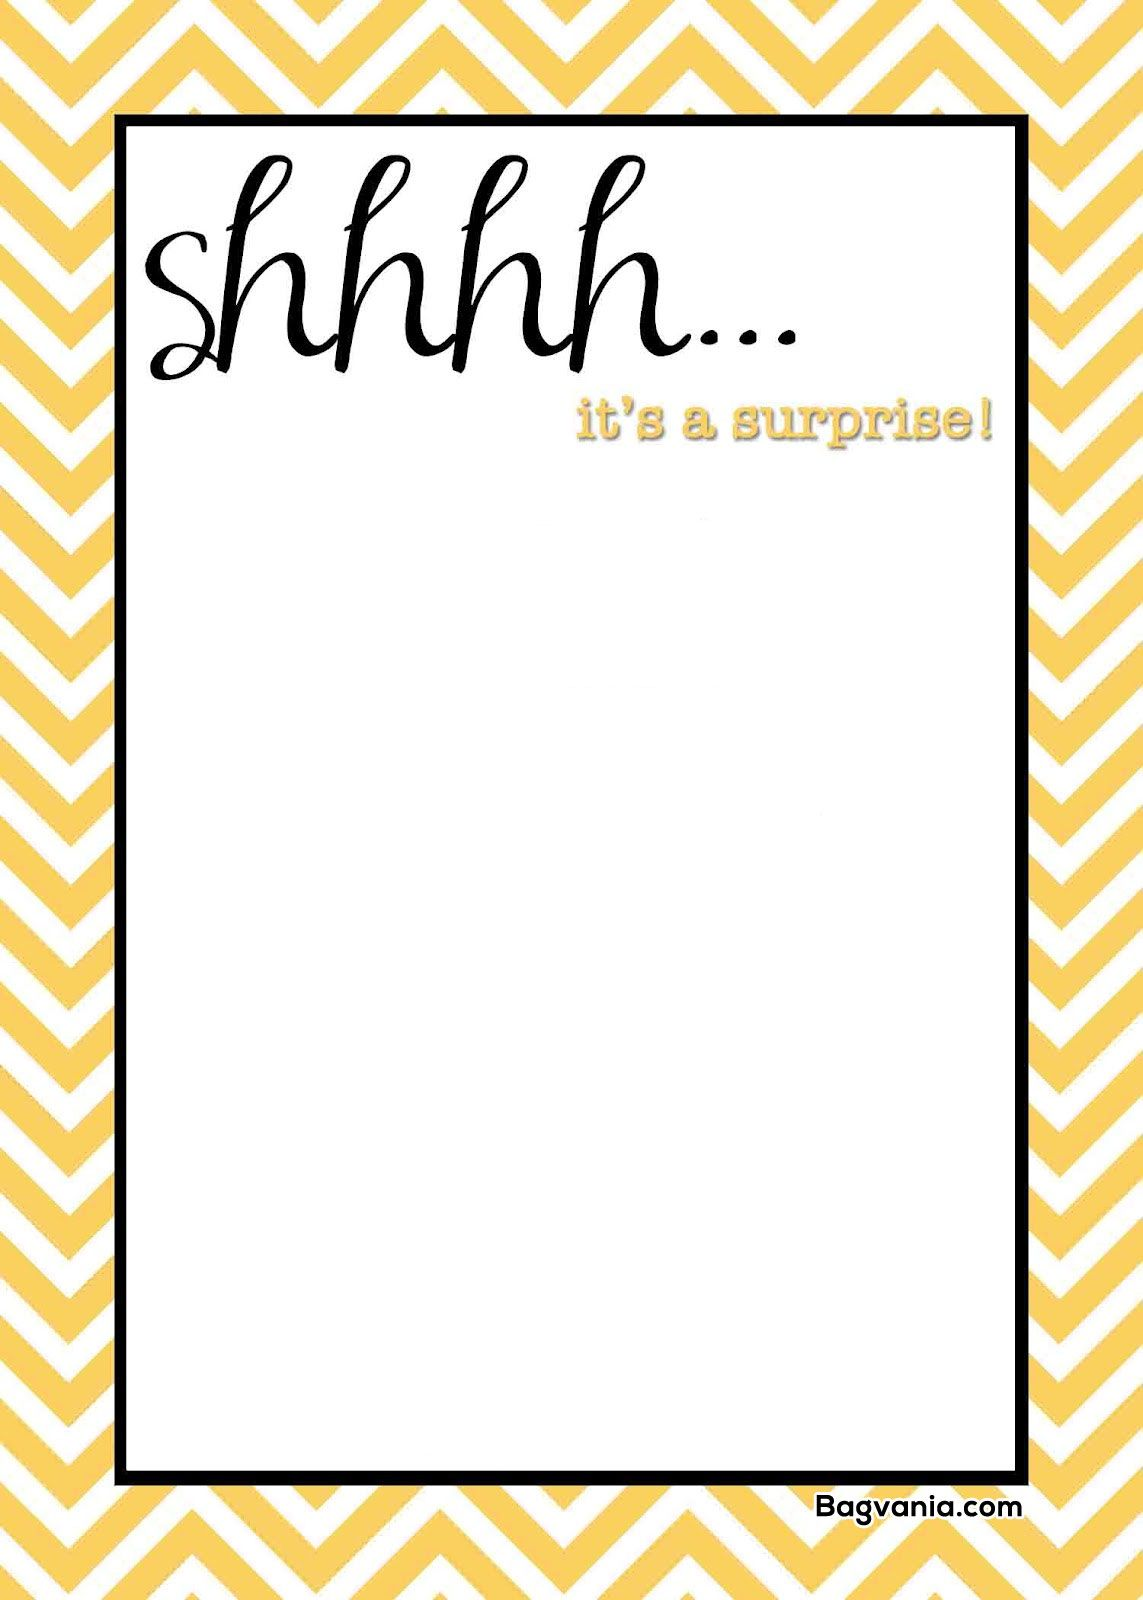 Free Printable Surprise Birthday Invitations Bagvania FREE Invitation Template